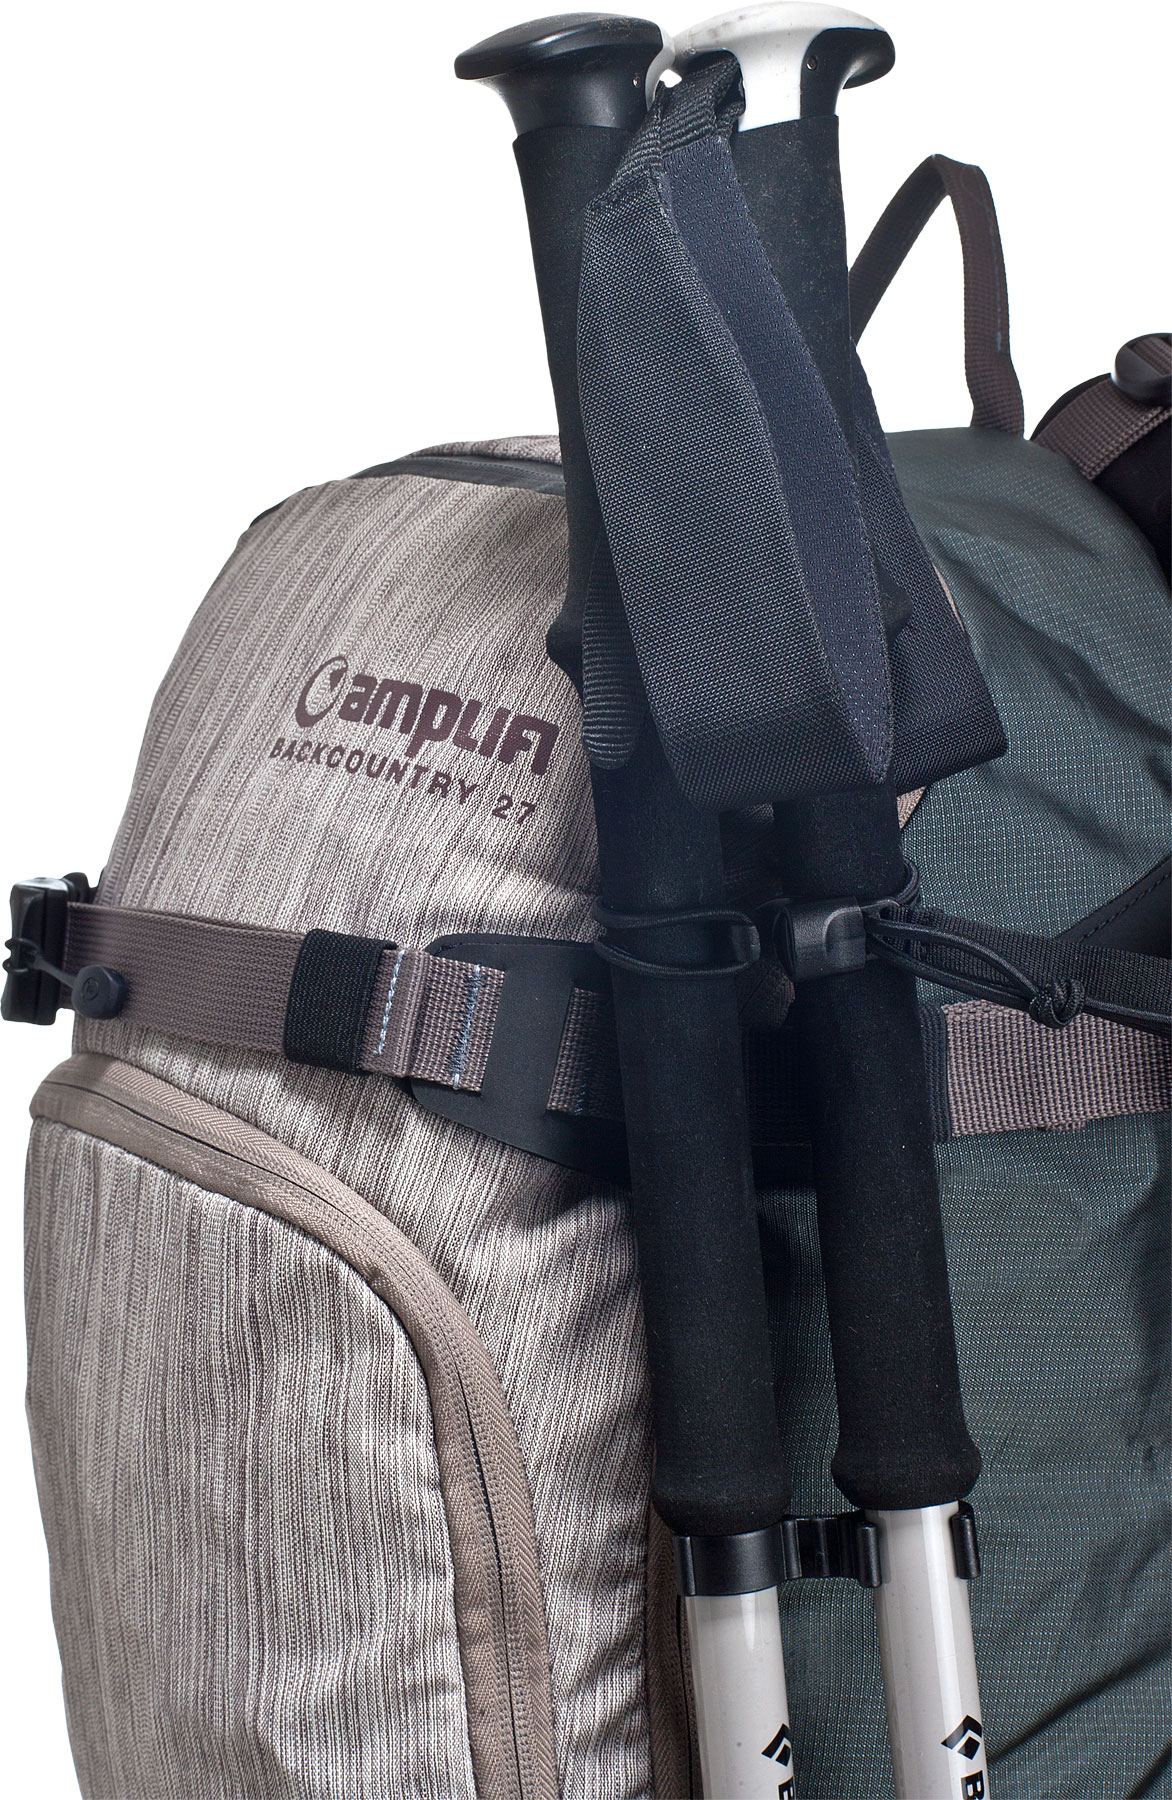 amplifi_backcountry27_detail03